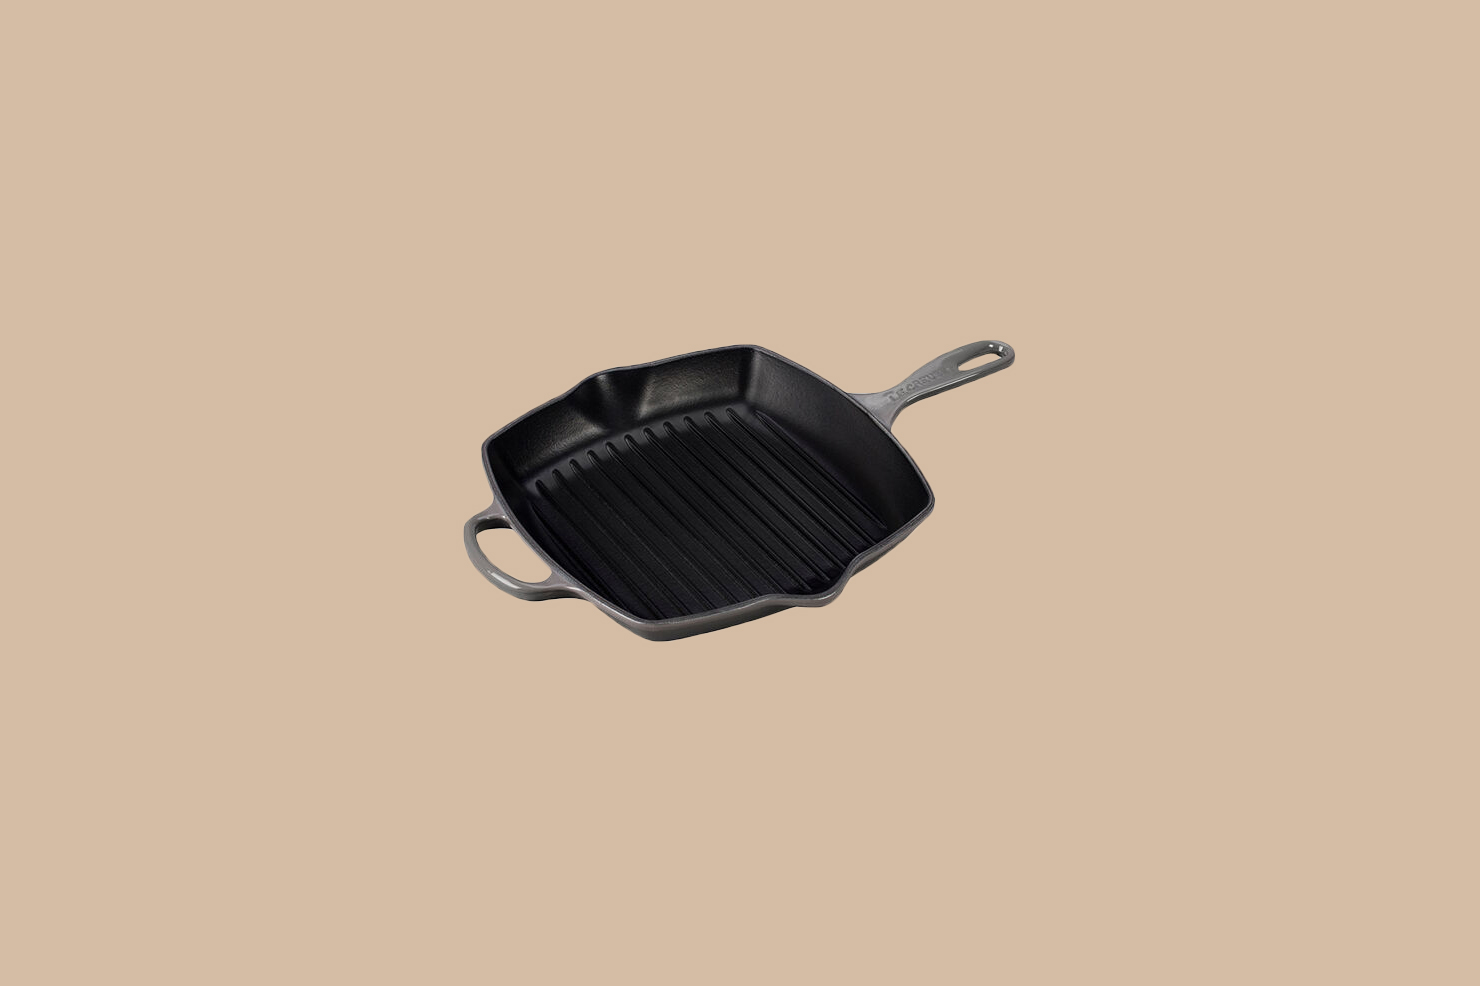 Le Creuset Signature Square Skillet Grill in Oyster